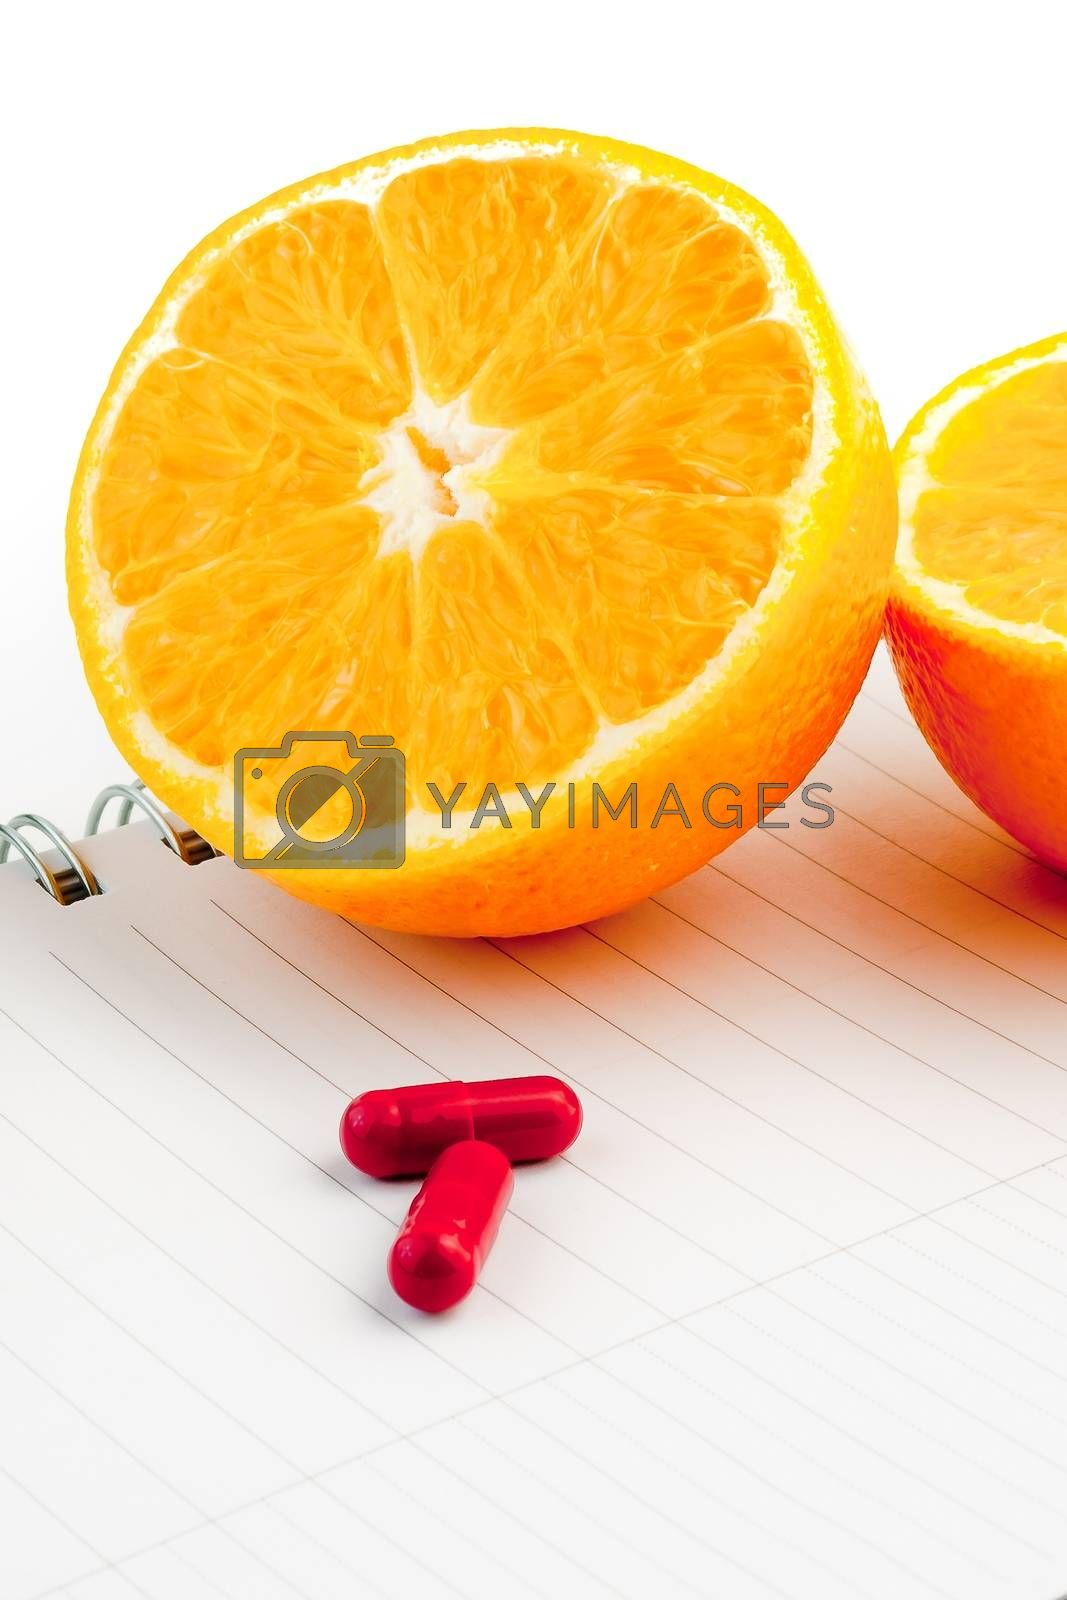 detail an orange and capsule on notepad